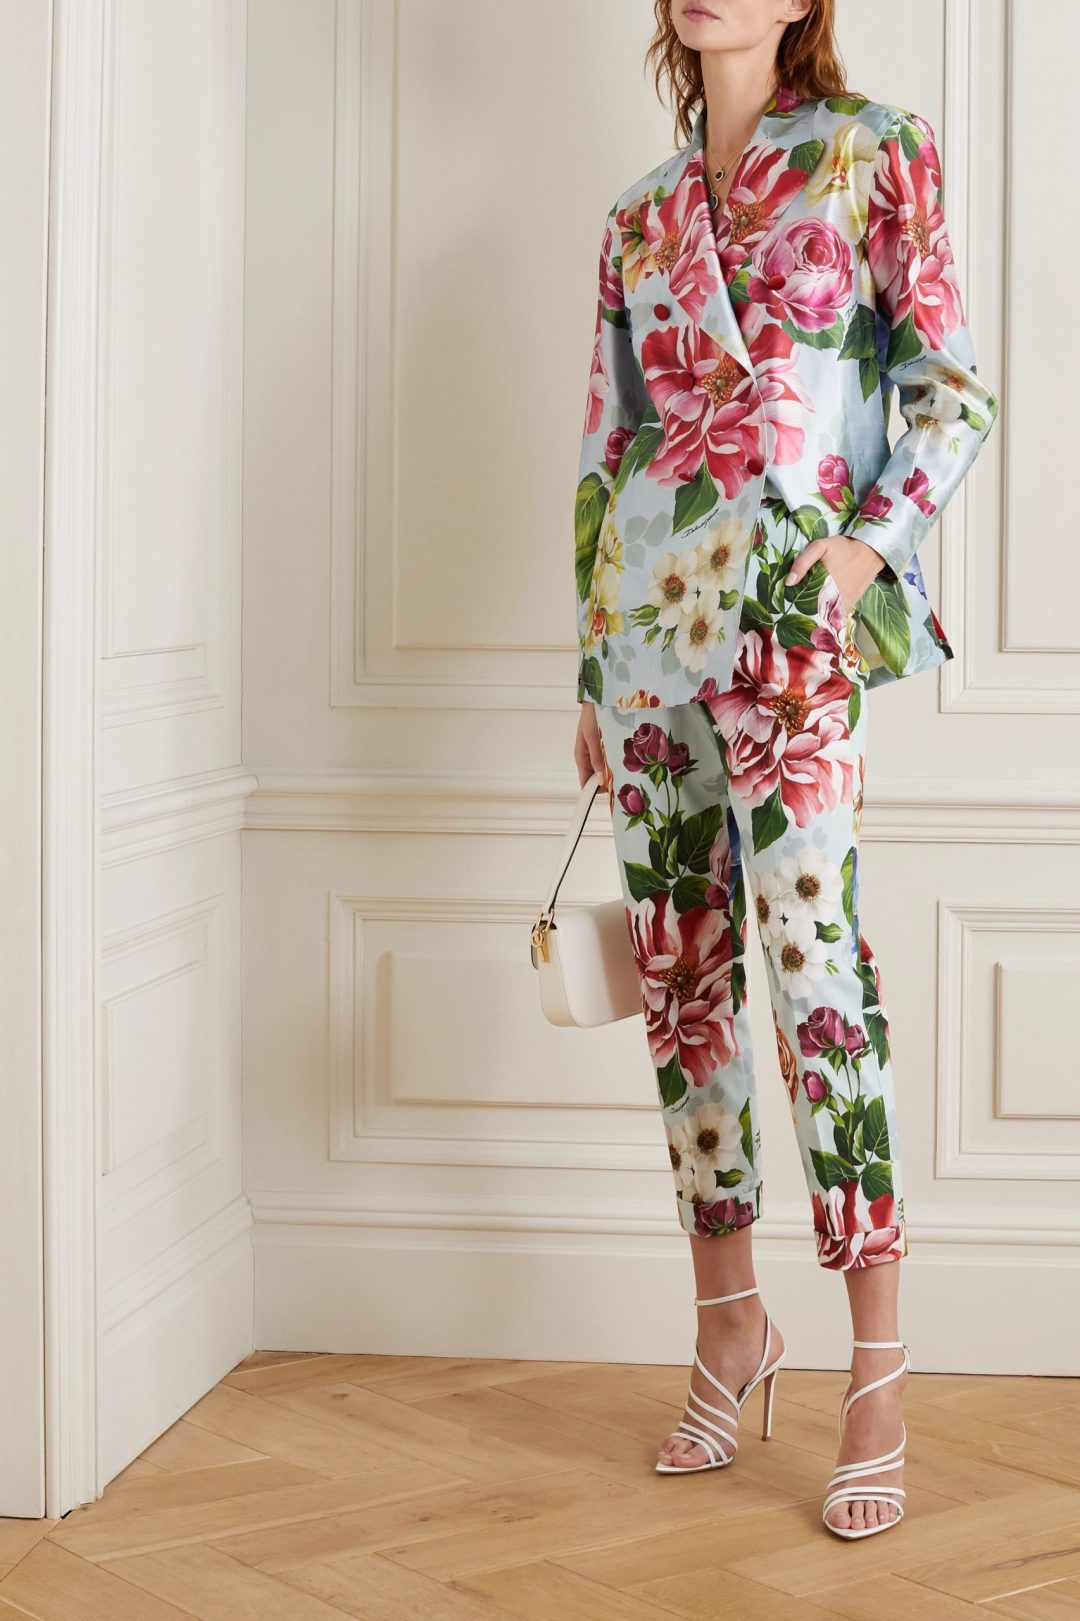 Floral trouser suit for the mother of the groom